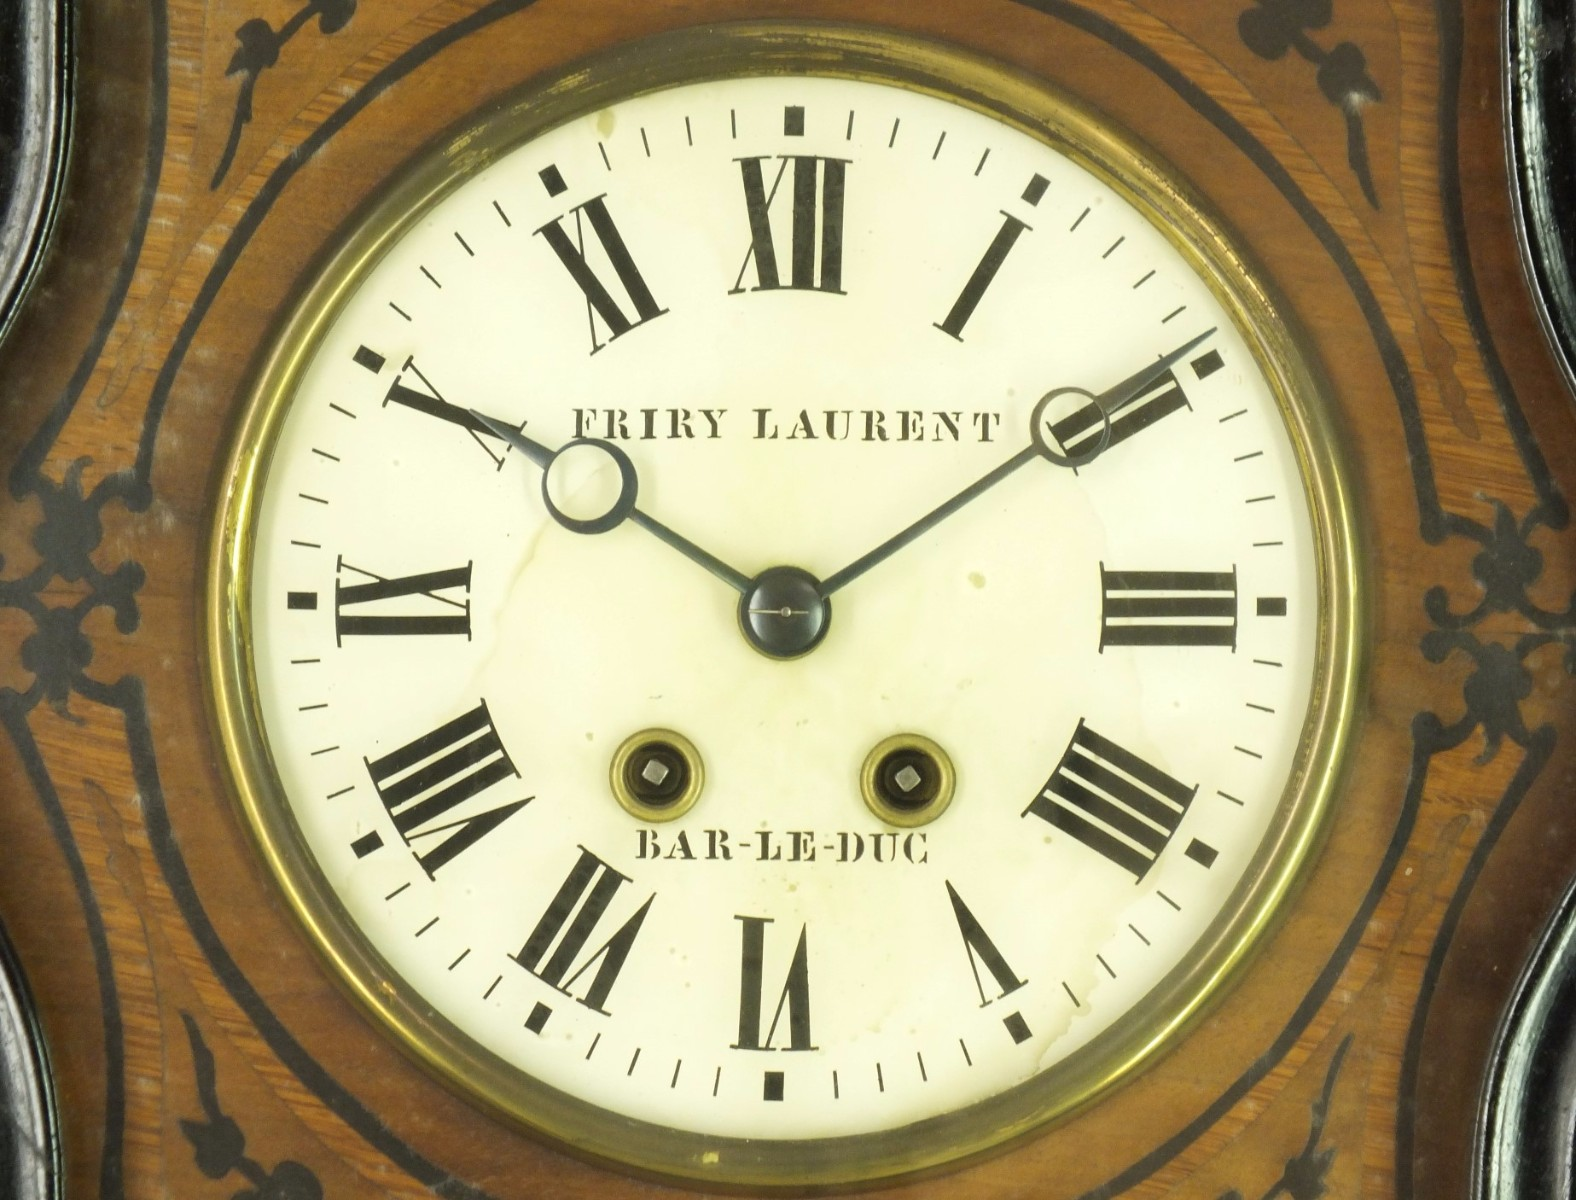 a very nice 19th century antique french wall clock signed friry laurent a bar le 51. Black Bedroom Furniture Sets. Home Design Ideas